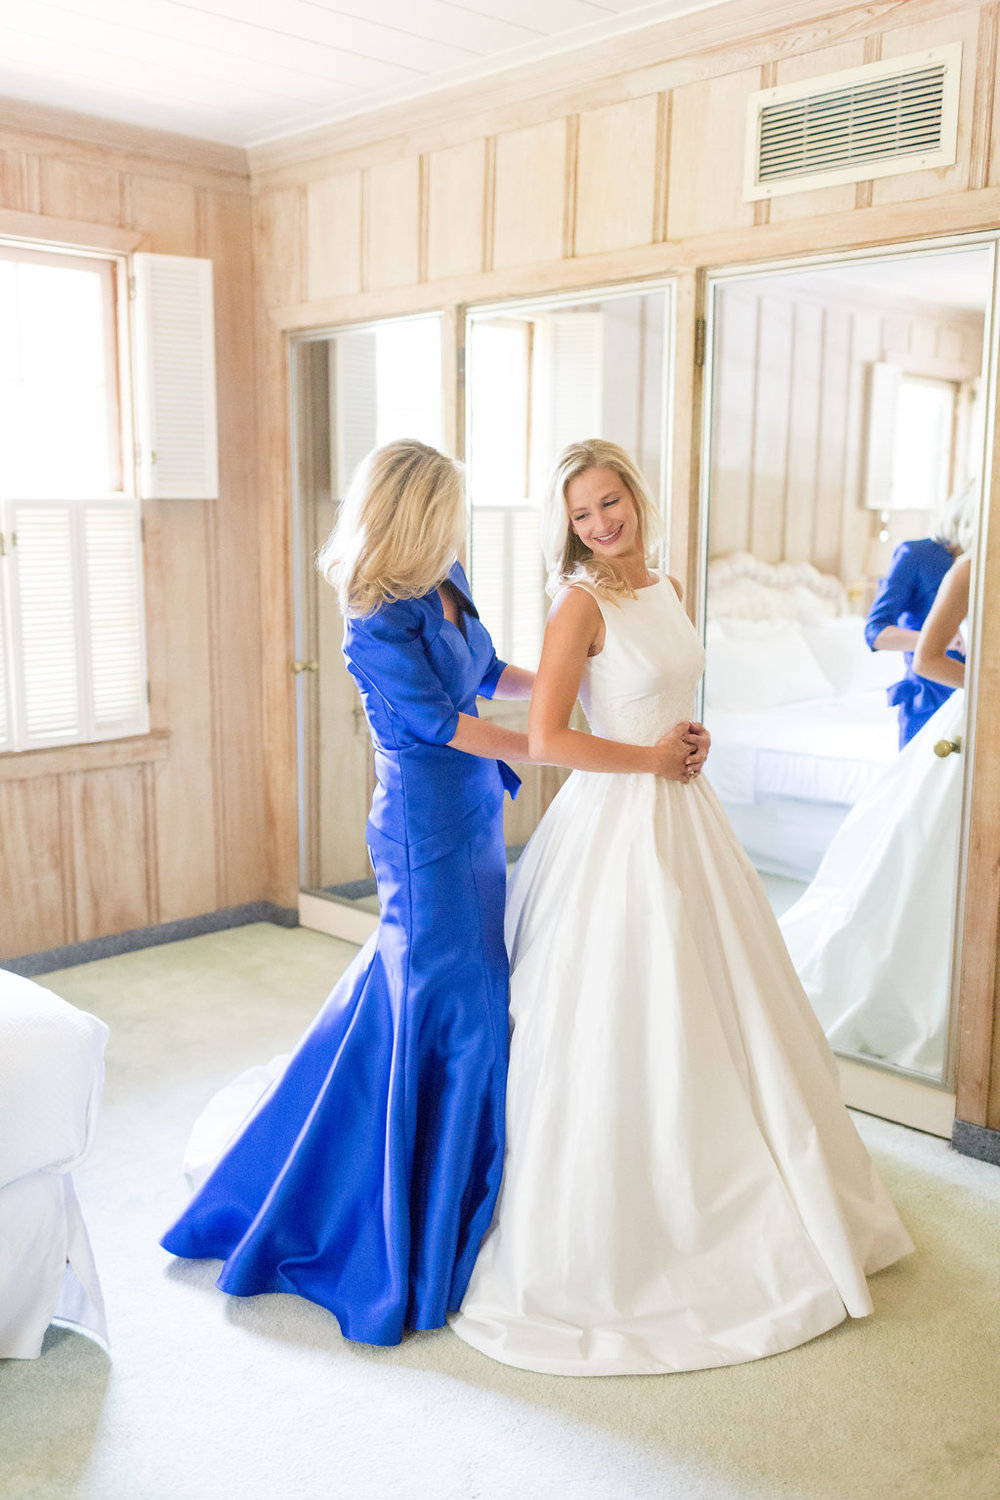 Gorgeous Simple Wedding Dresses - Musgrove Plantation Georgia Wedding Venue